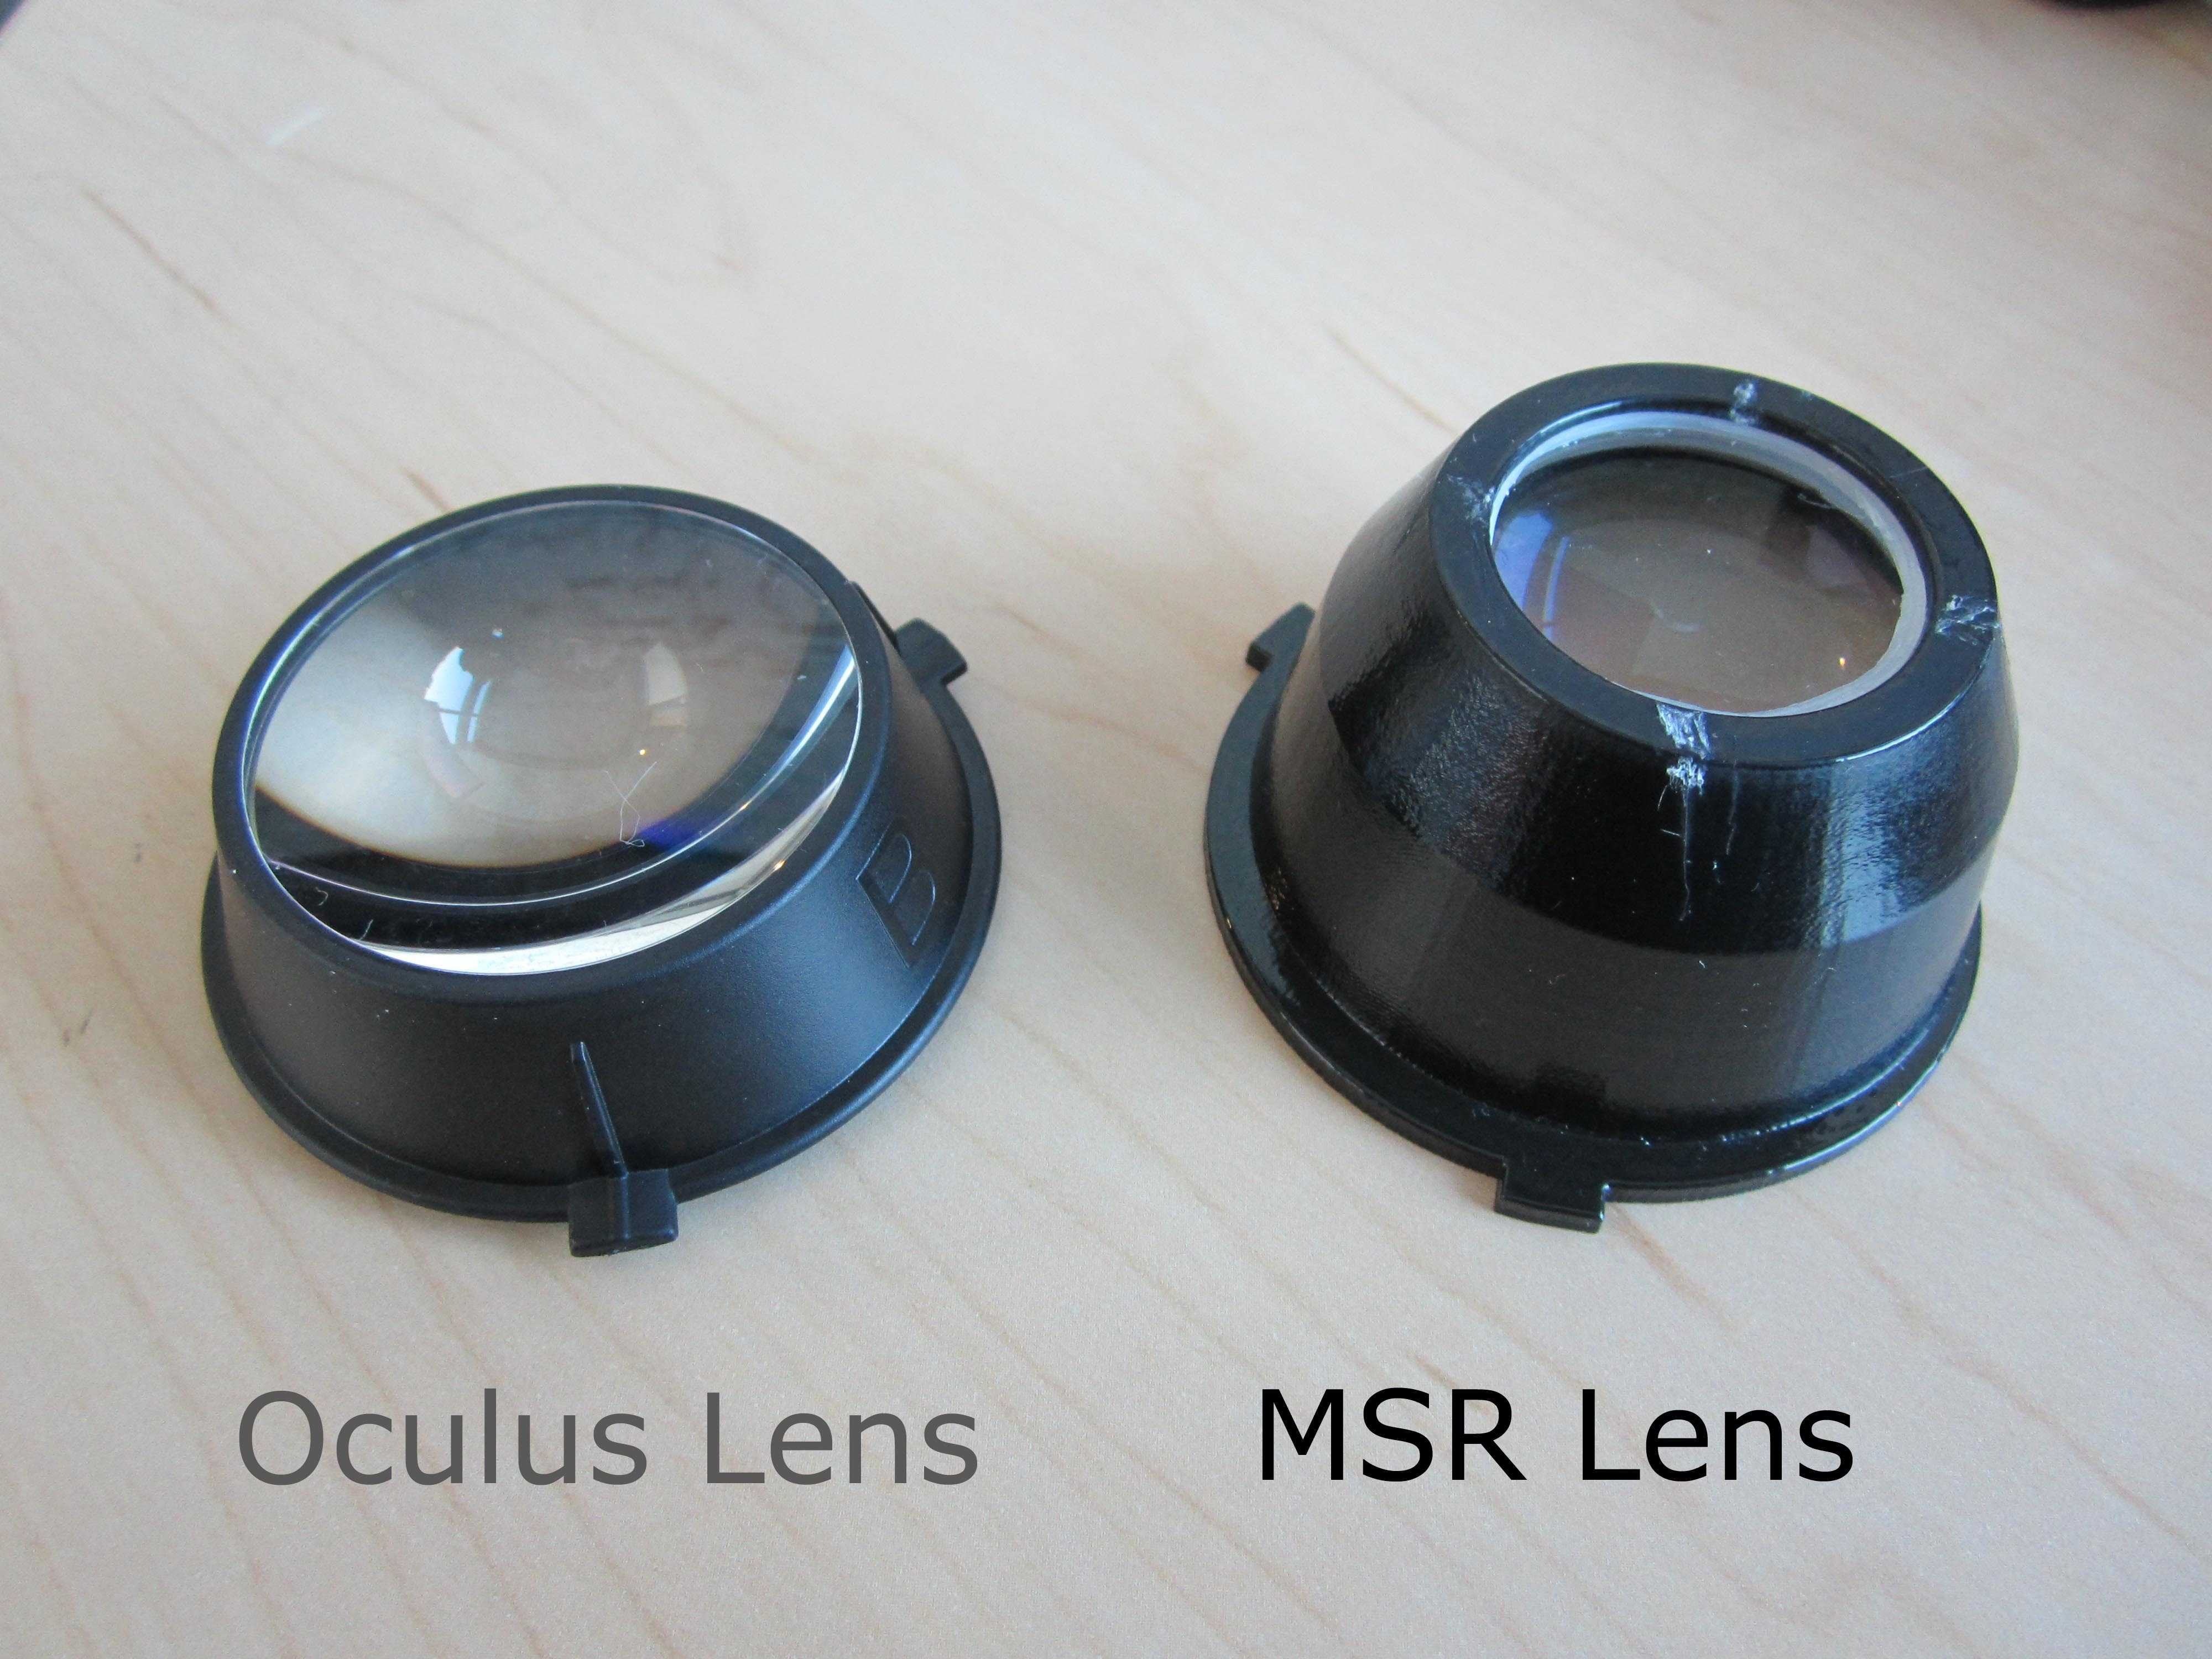 Microsoft made improved replacement lenses for the Oculus Rift